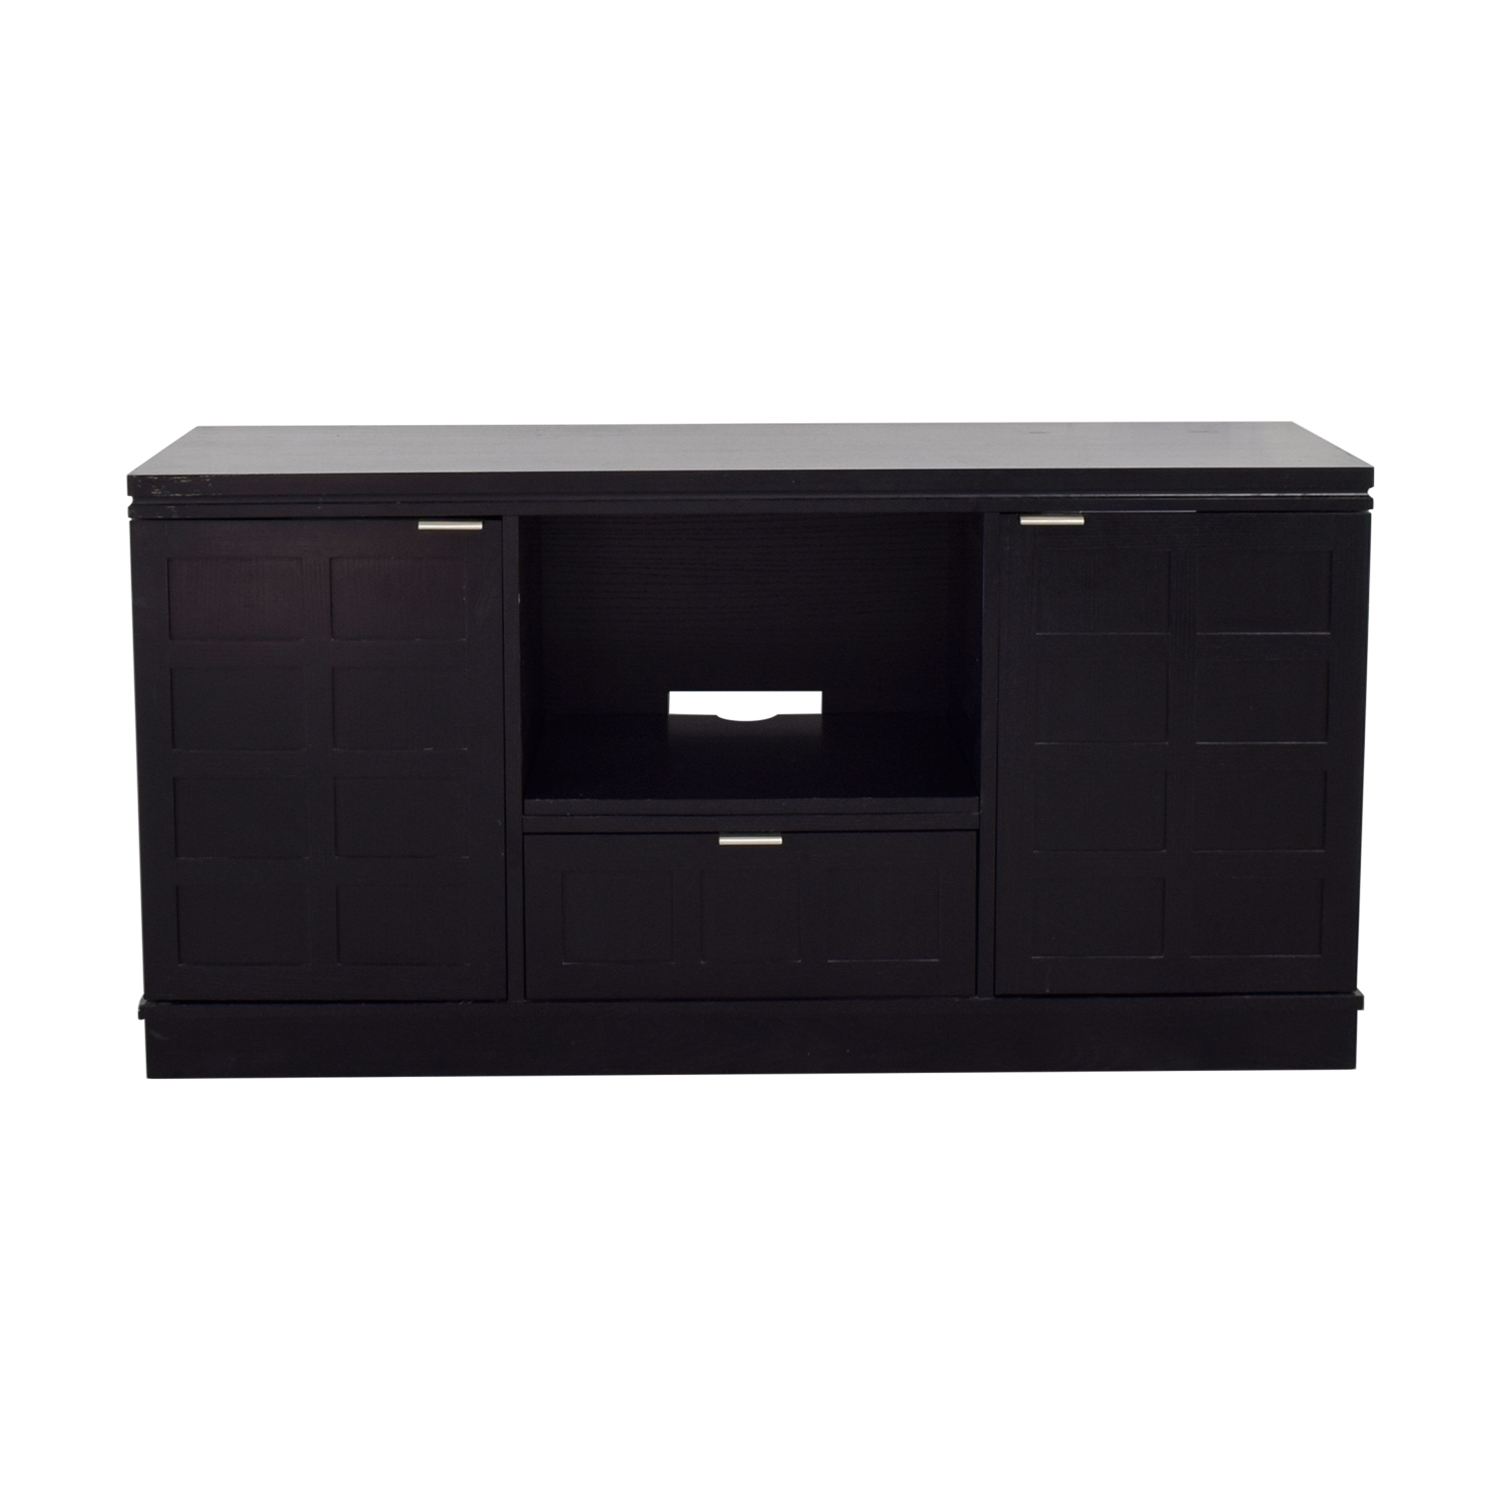 buy Crate & Barrel Wood Media Console Crate & Barrel Media Units